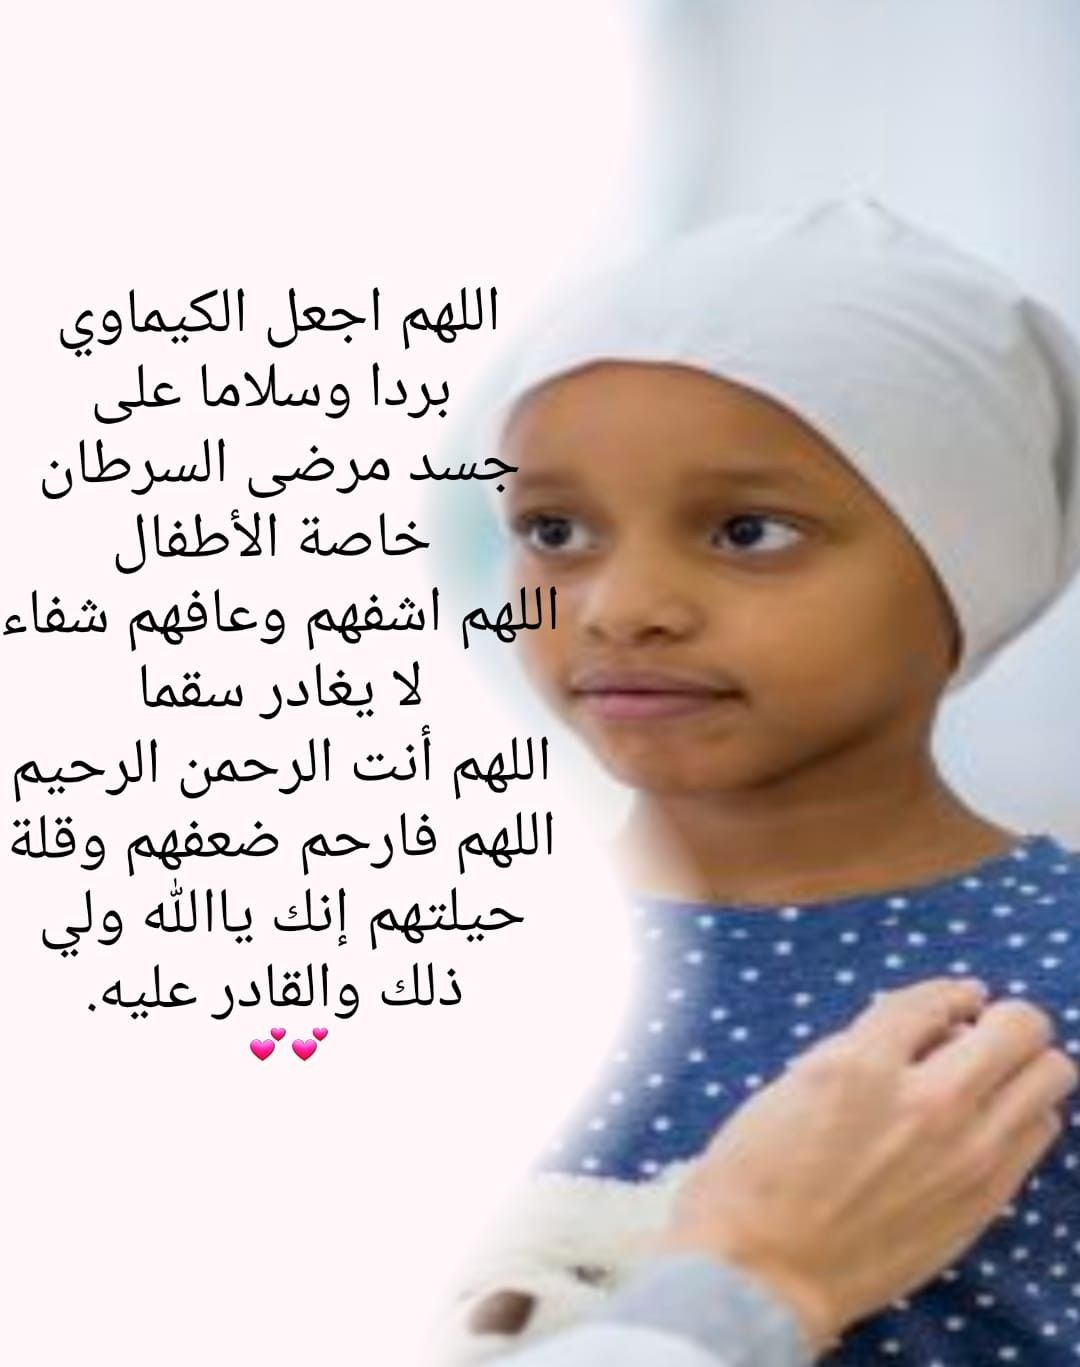 Pin By Souad Ramzi On عربي رسائل من تصميمي Word Search Puzzle Words Word Search